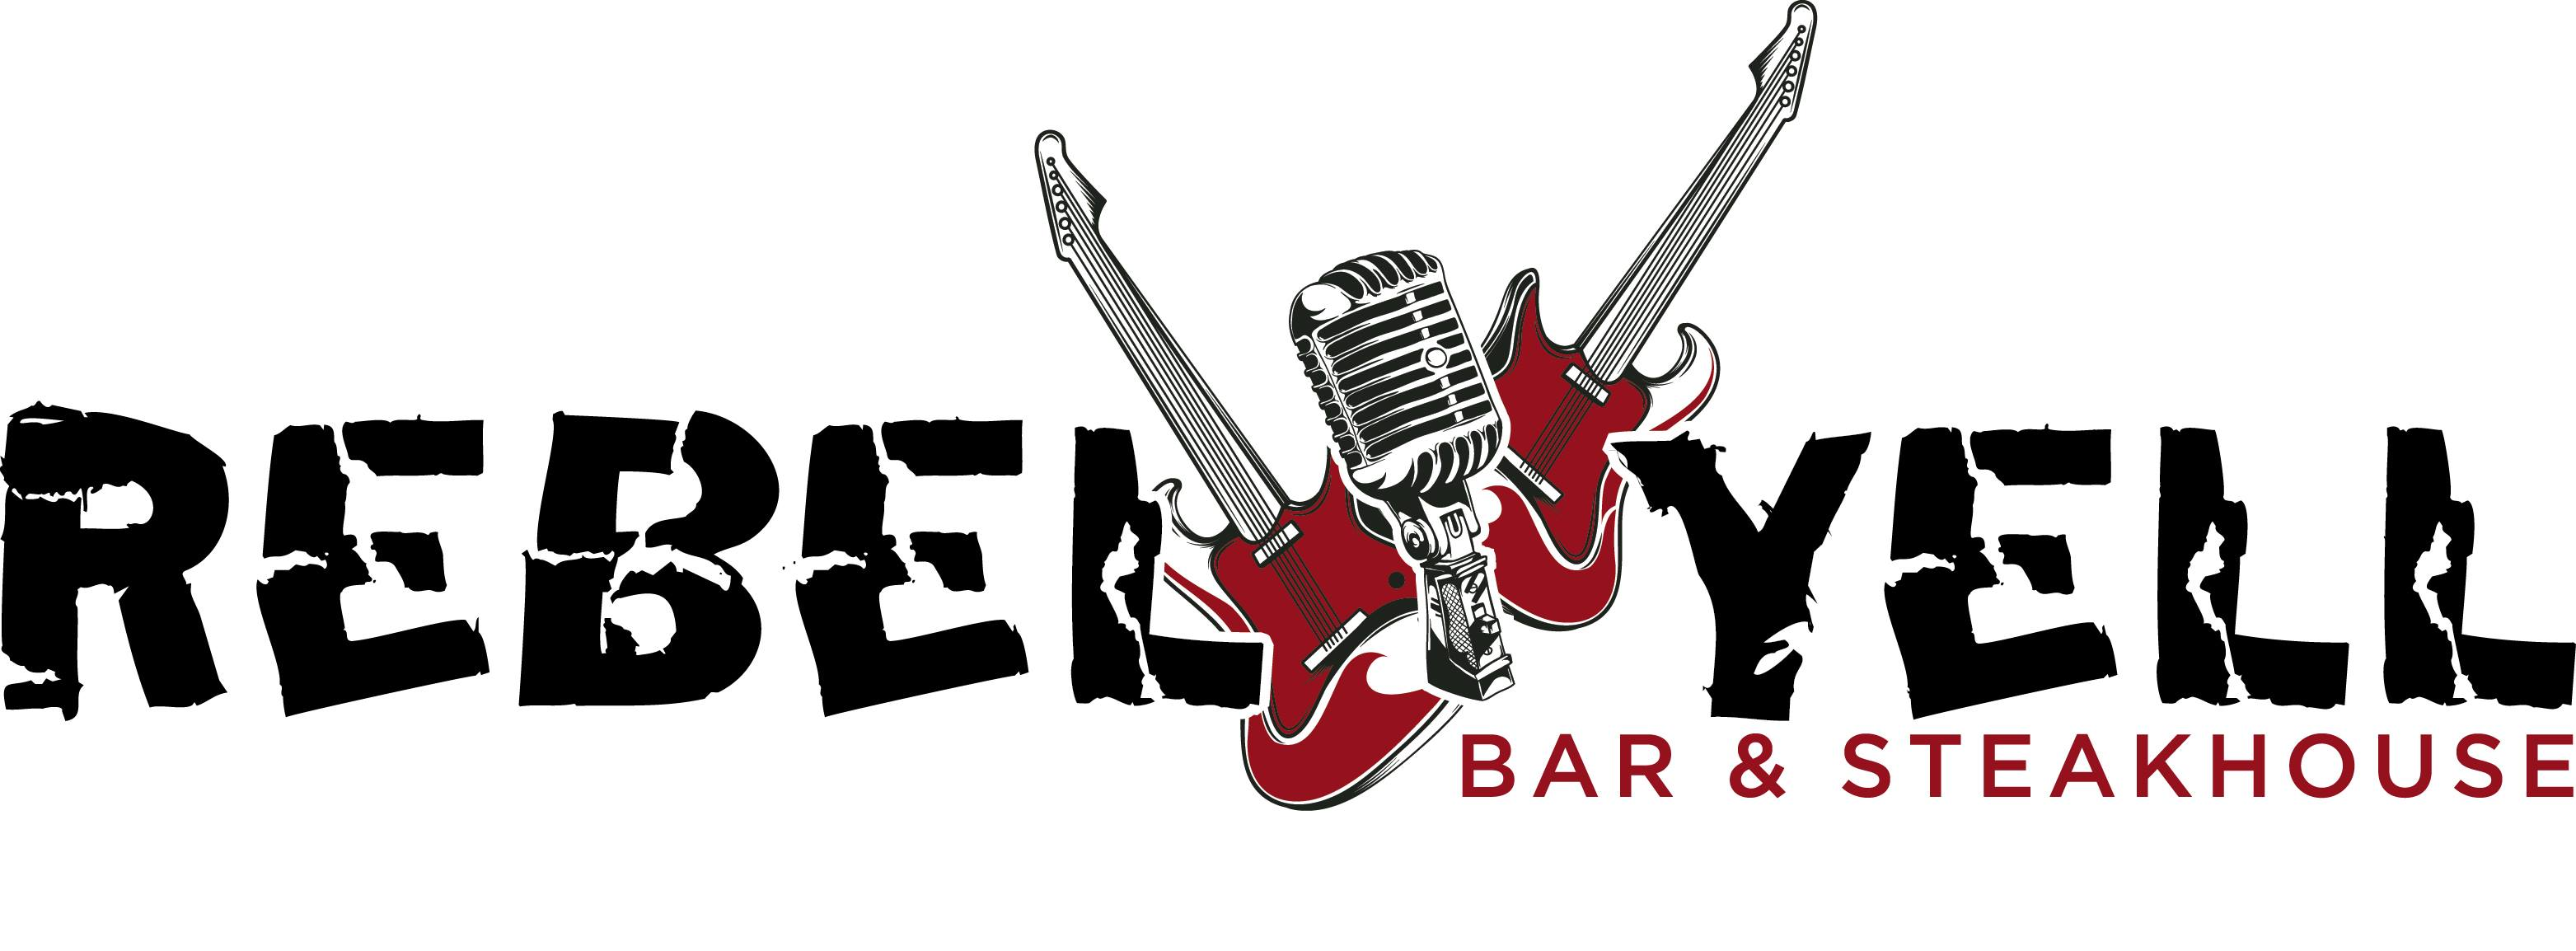 Rebel Yell Bar & Steakhouse 2050 Valinda Ave, West Covina